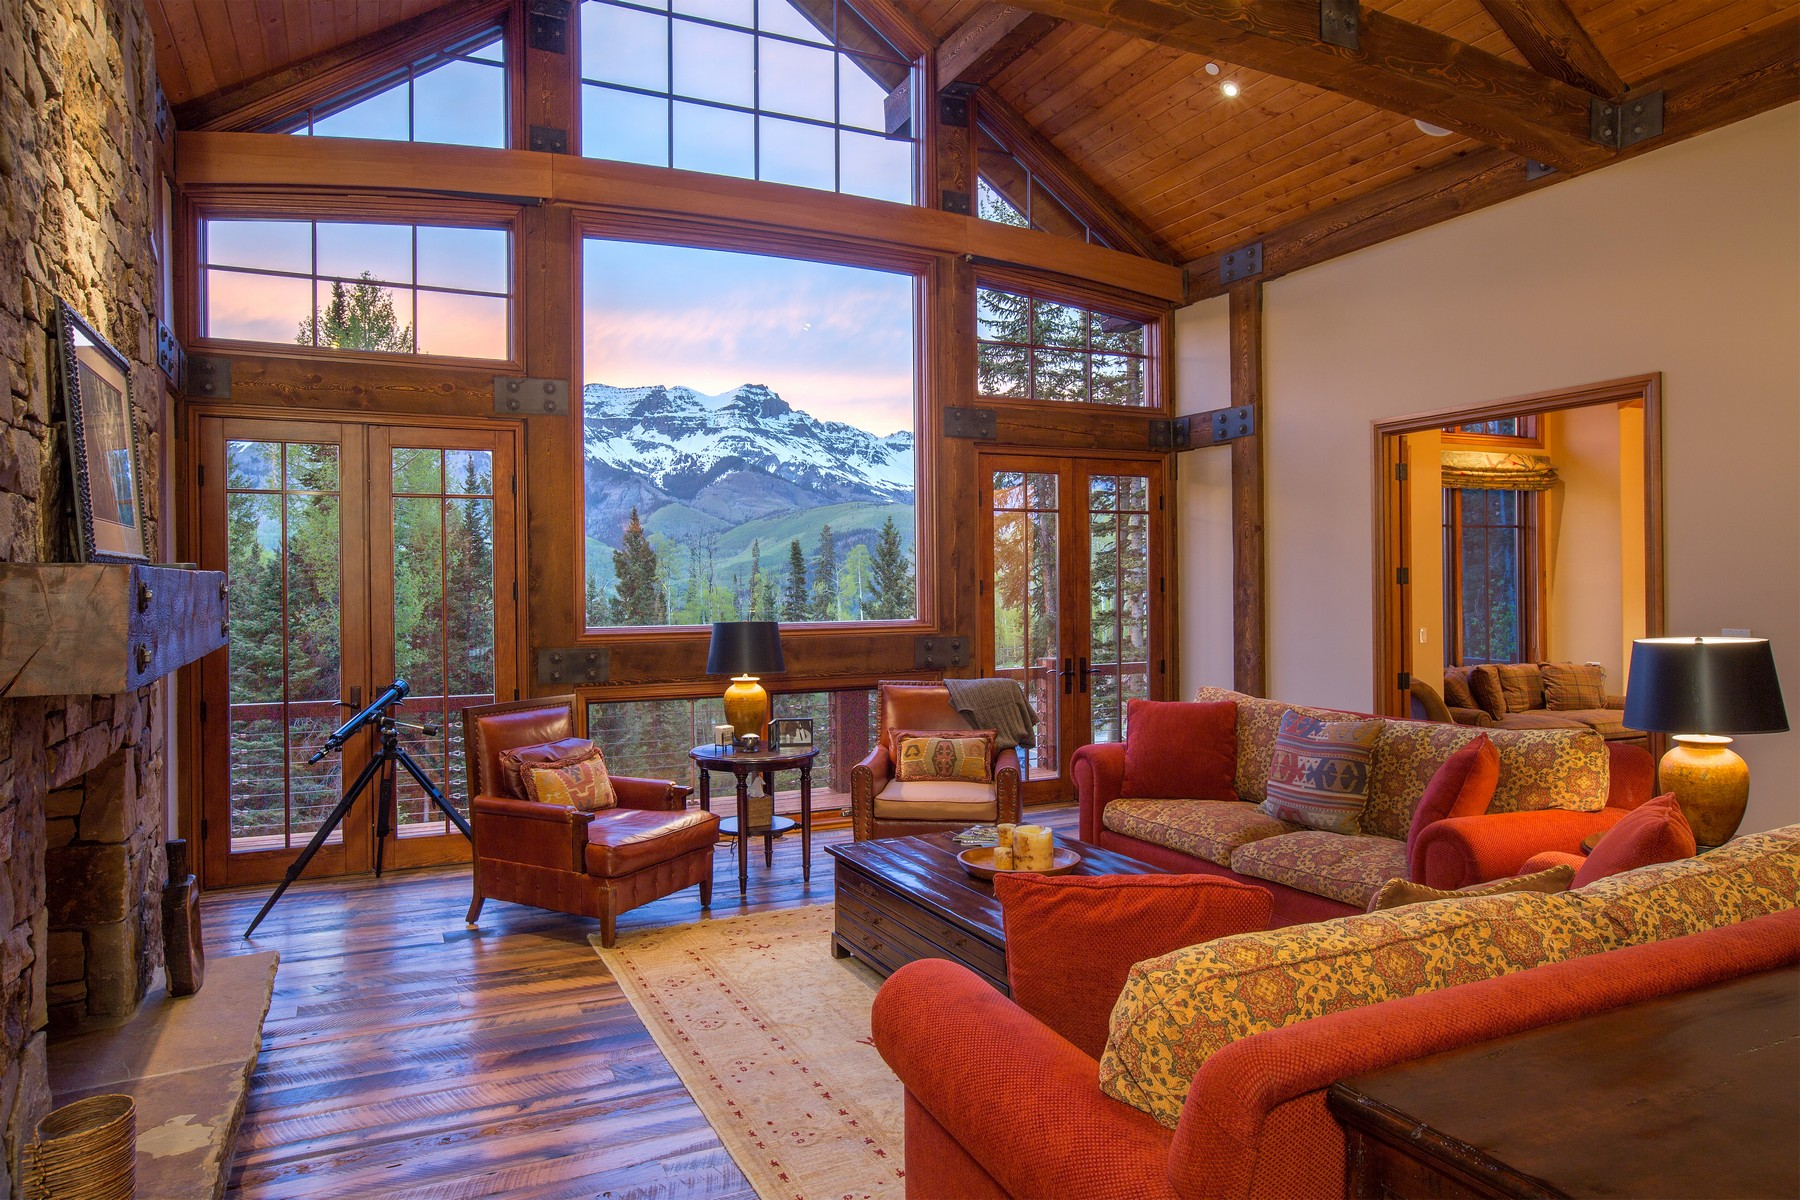 Single Family Home for Sale at 159 Benchmark Telluride, Colorado, 81435 United States